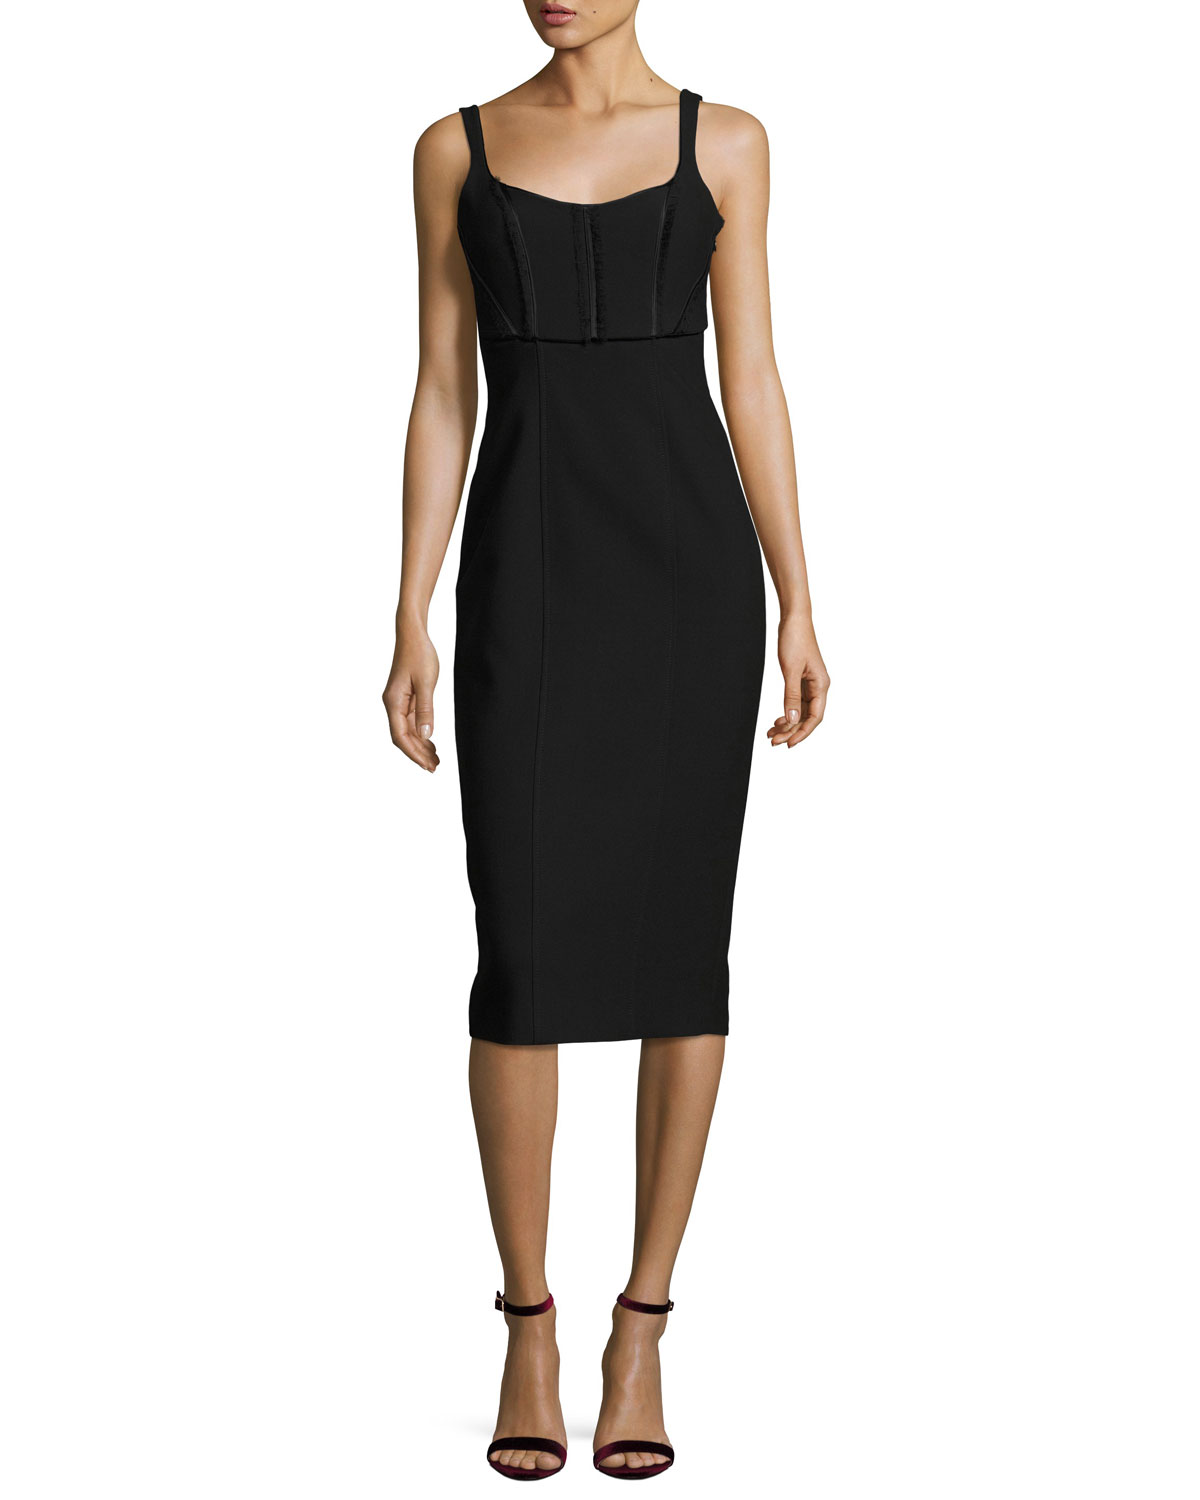 Ellette Sleeveless Sheath Midi Dress, Black